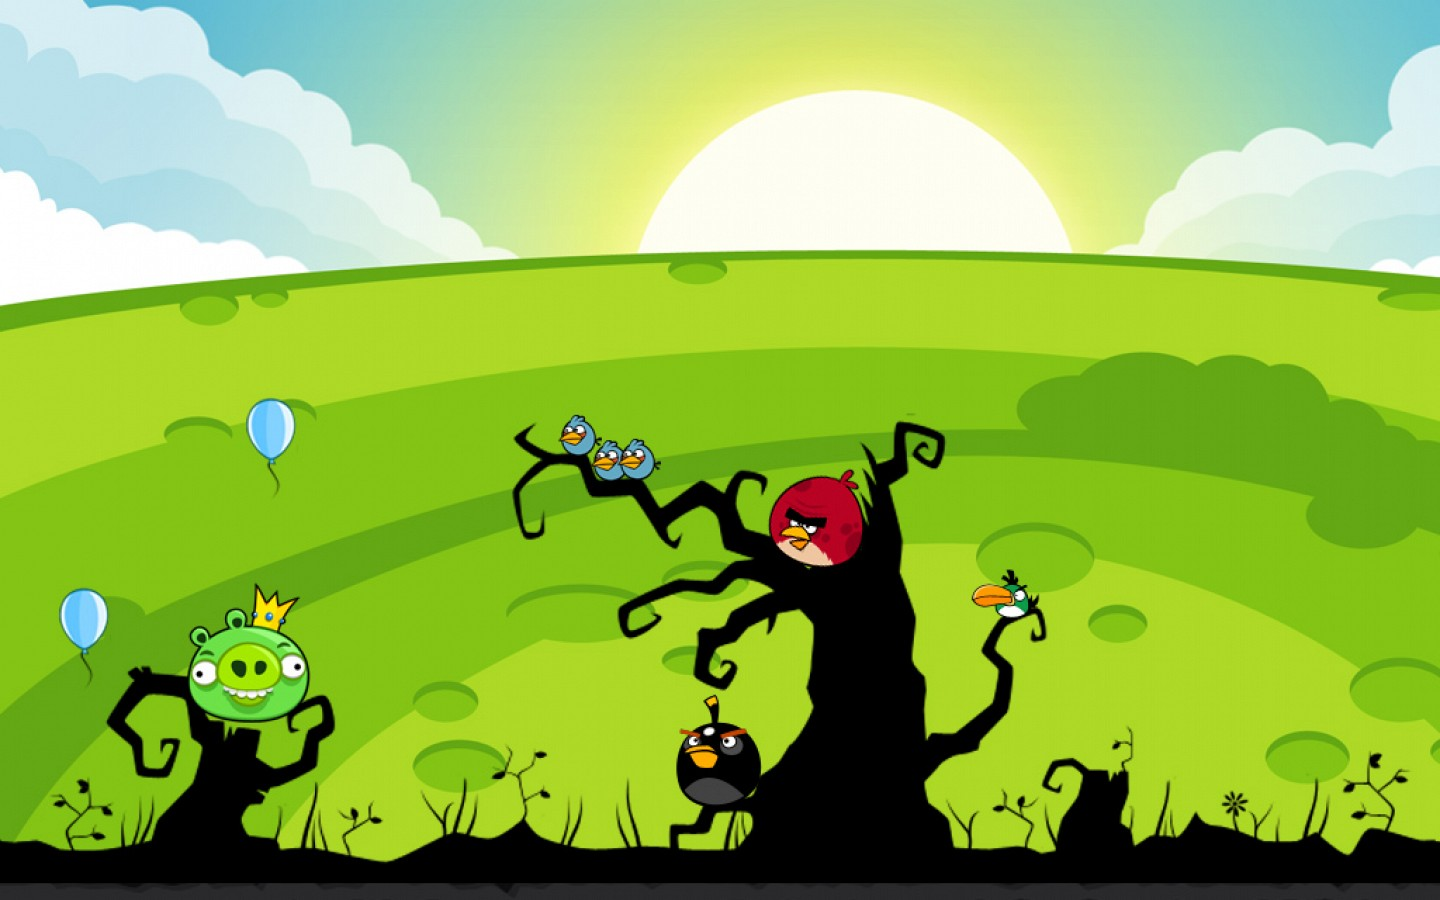 http://2.bp.blogspot.com/-_XltVFKRKoM/T6eZHd_LovI/AAAAAAAABOs/0zVyqxaMWvQ/s1600/angry-birds-powerpoint-background-10.jpg